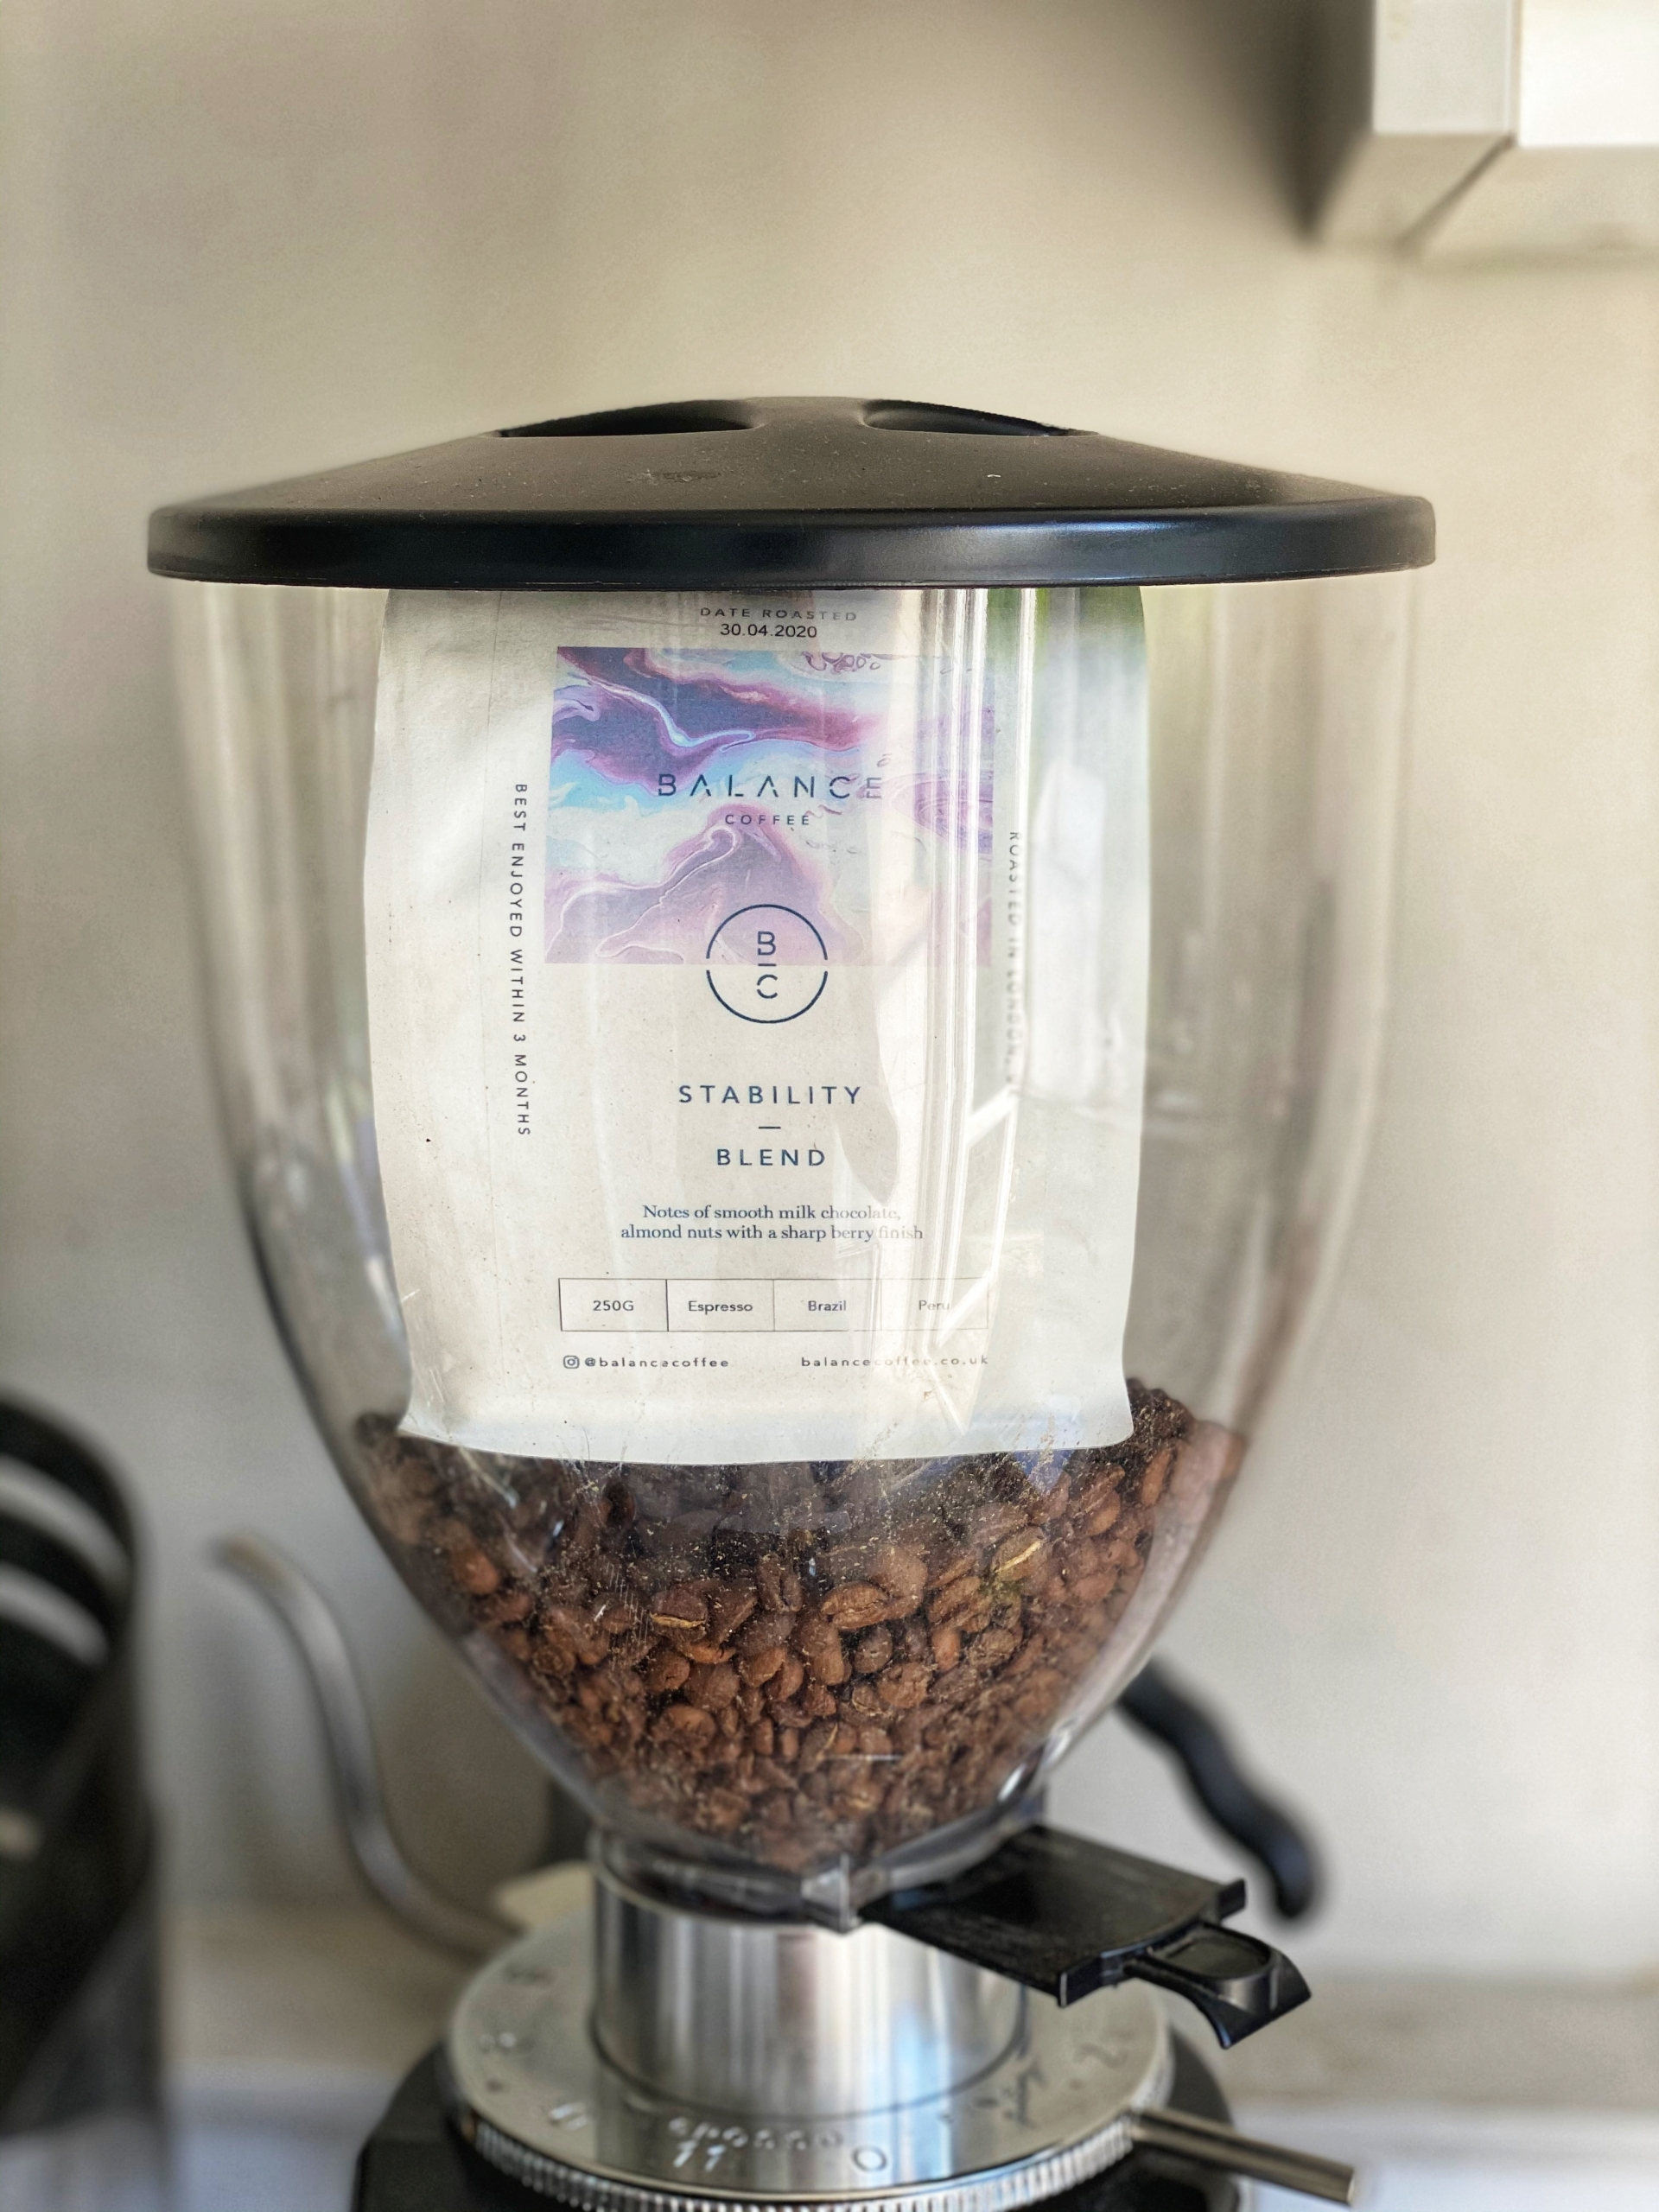 Our Stability blend - coffee equipment